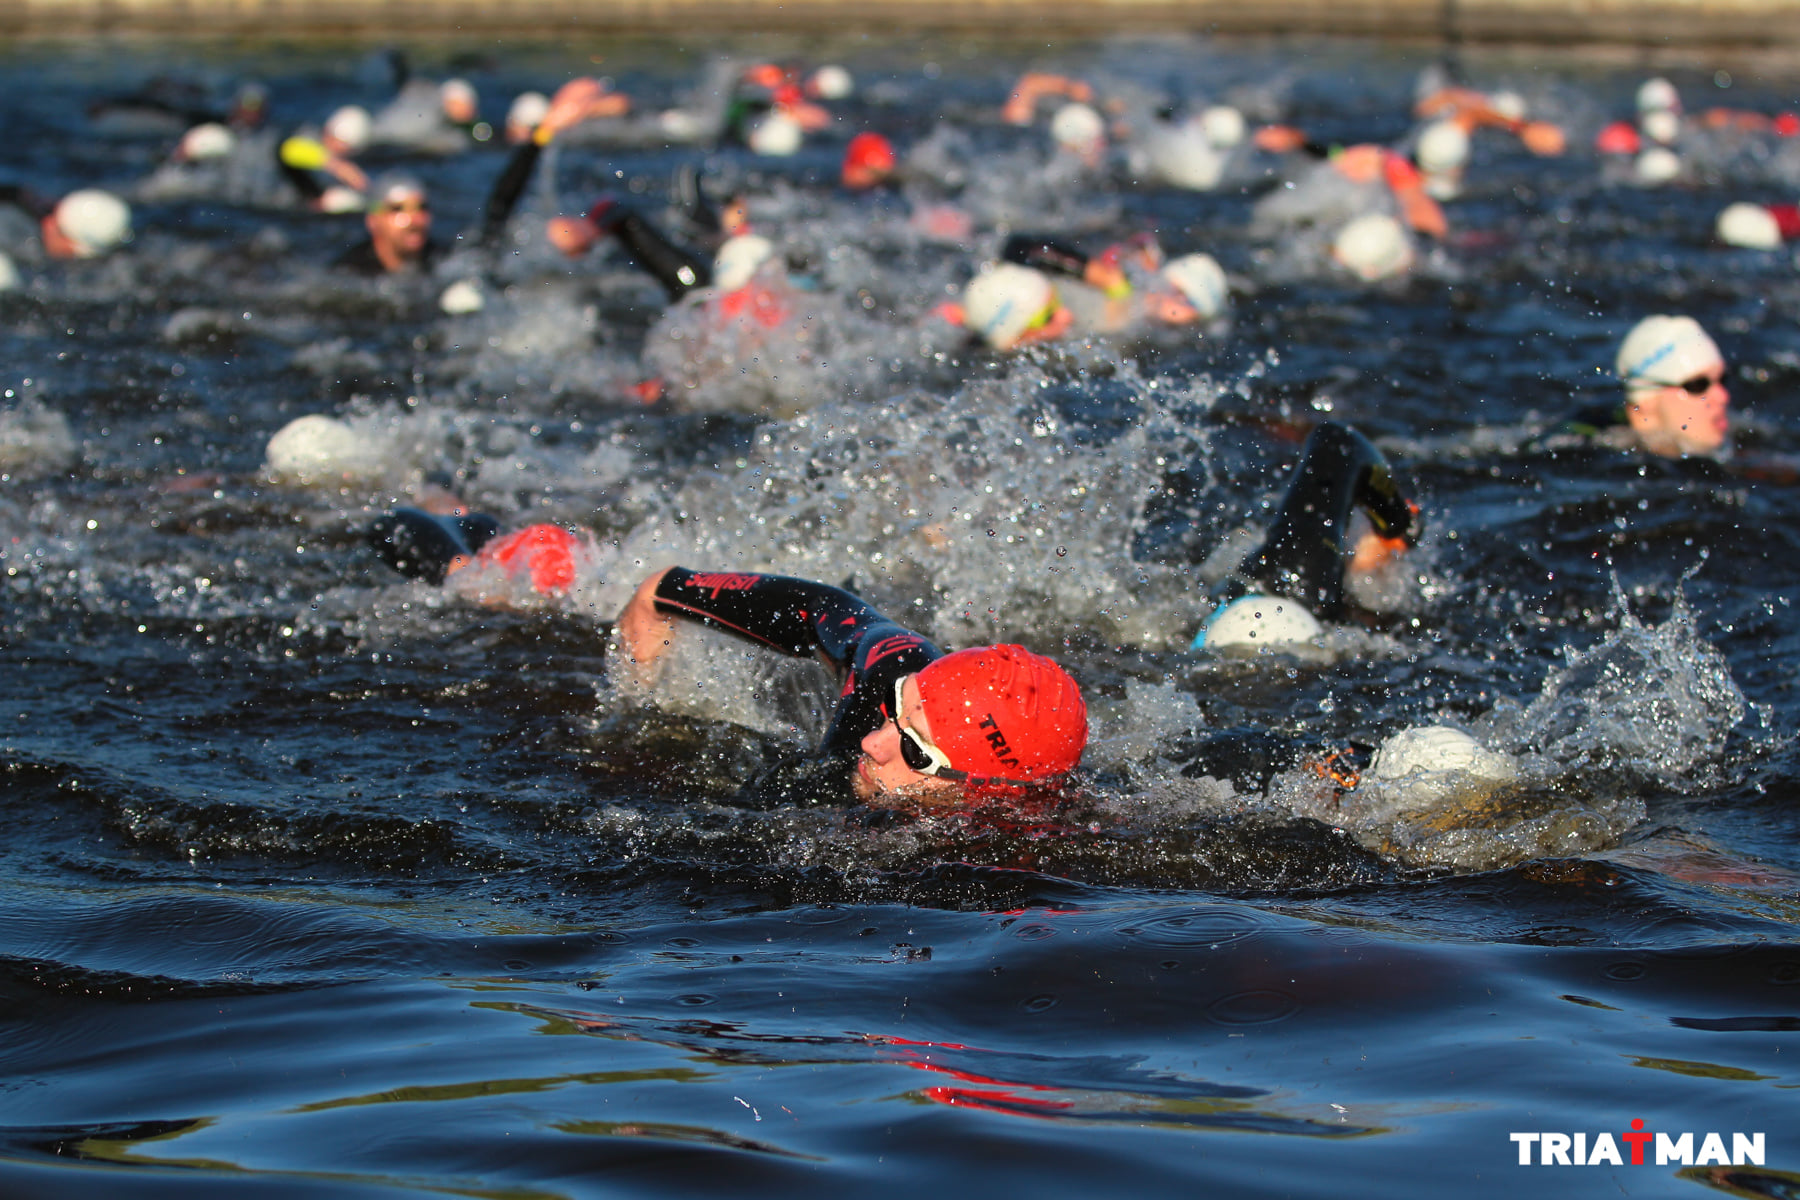 The triathlete's license will be available in mid-February